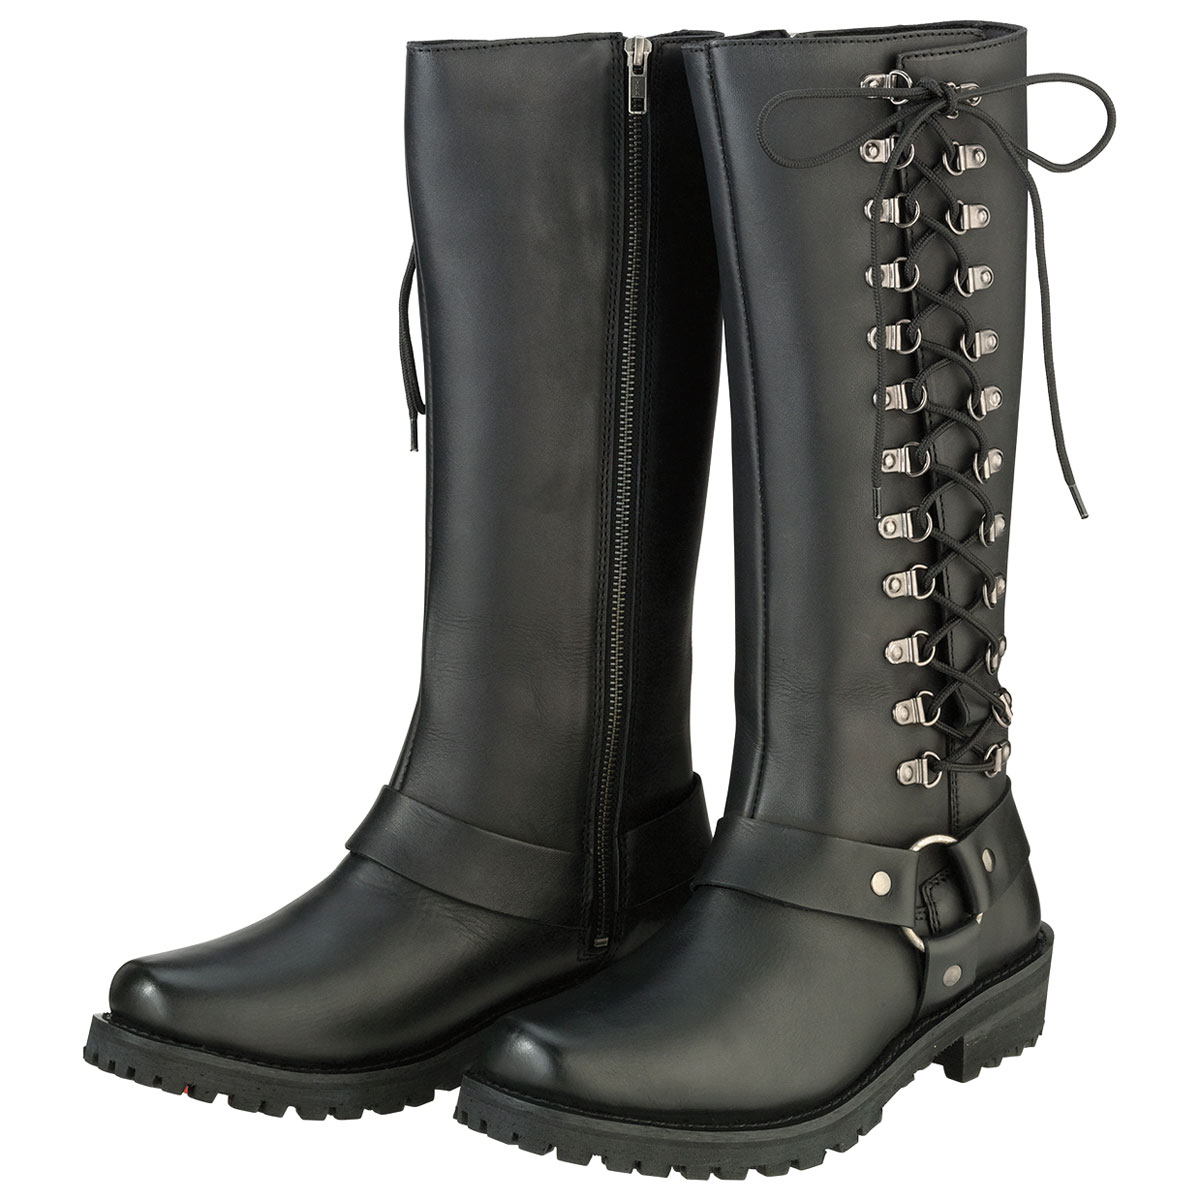 Z1R Women's Savage Black Leather Boots